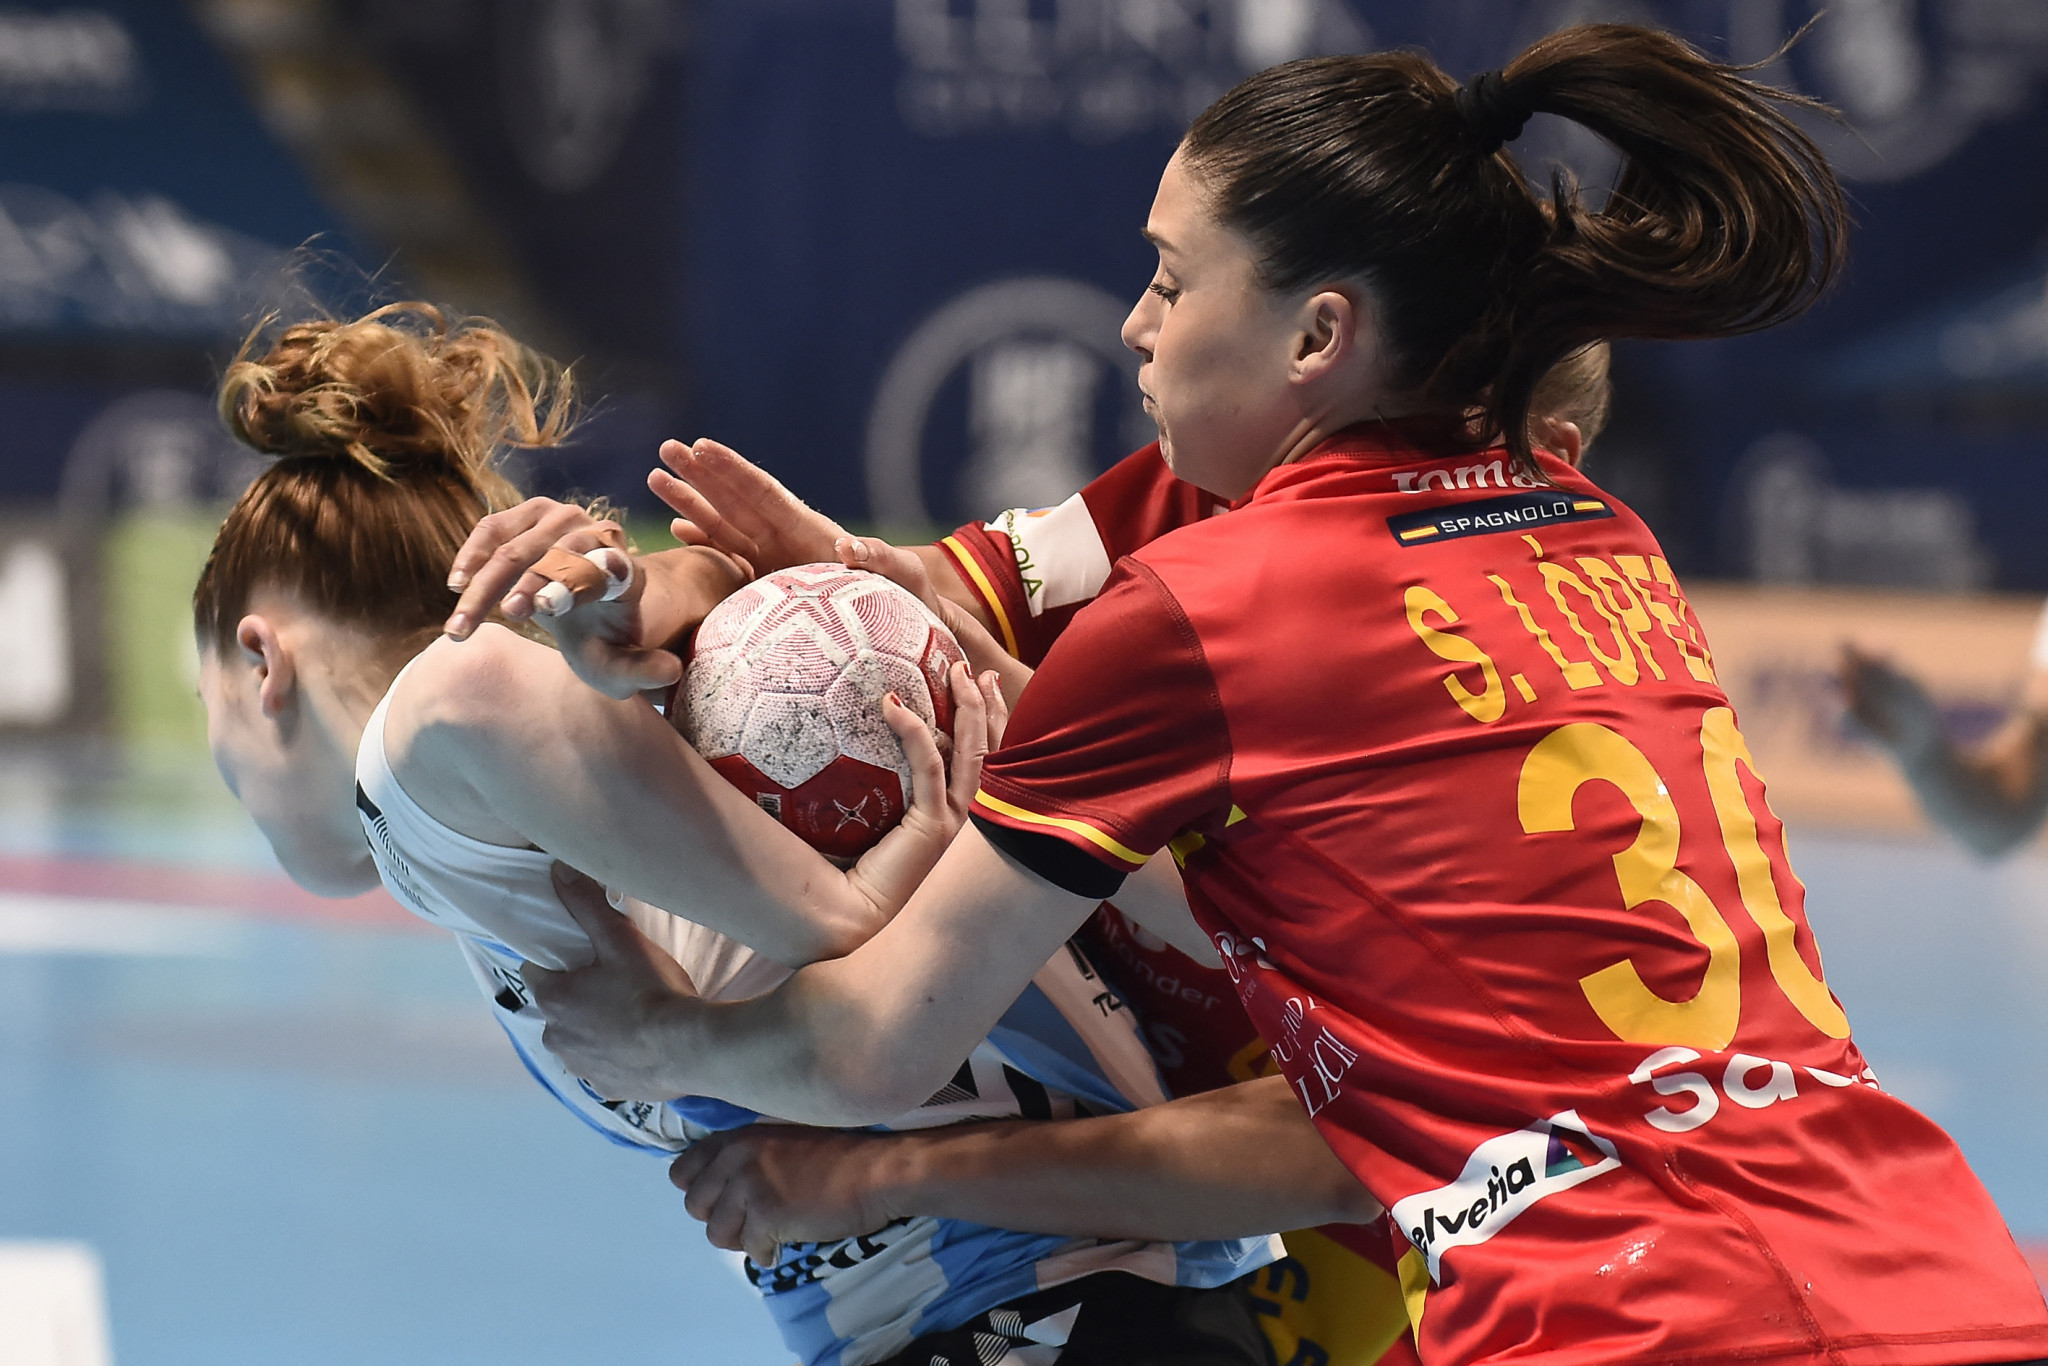 Spain, Montenegro and Norway secure remaining women's handball spots at Tokyo 2020